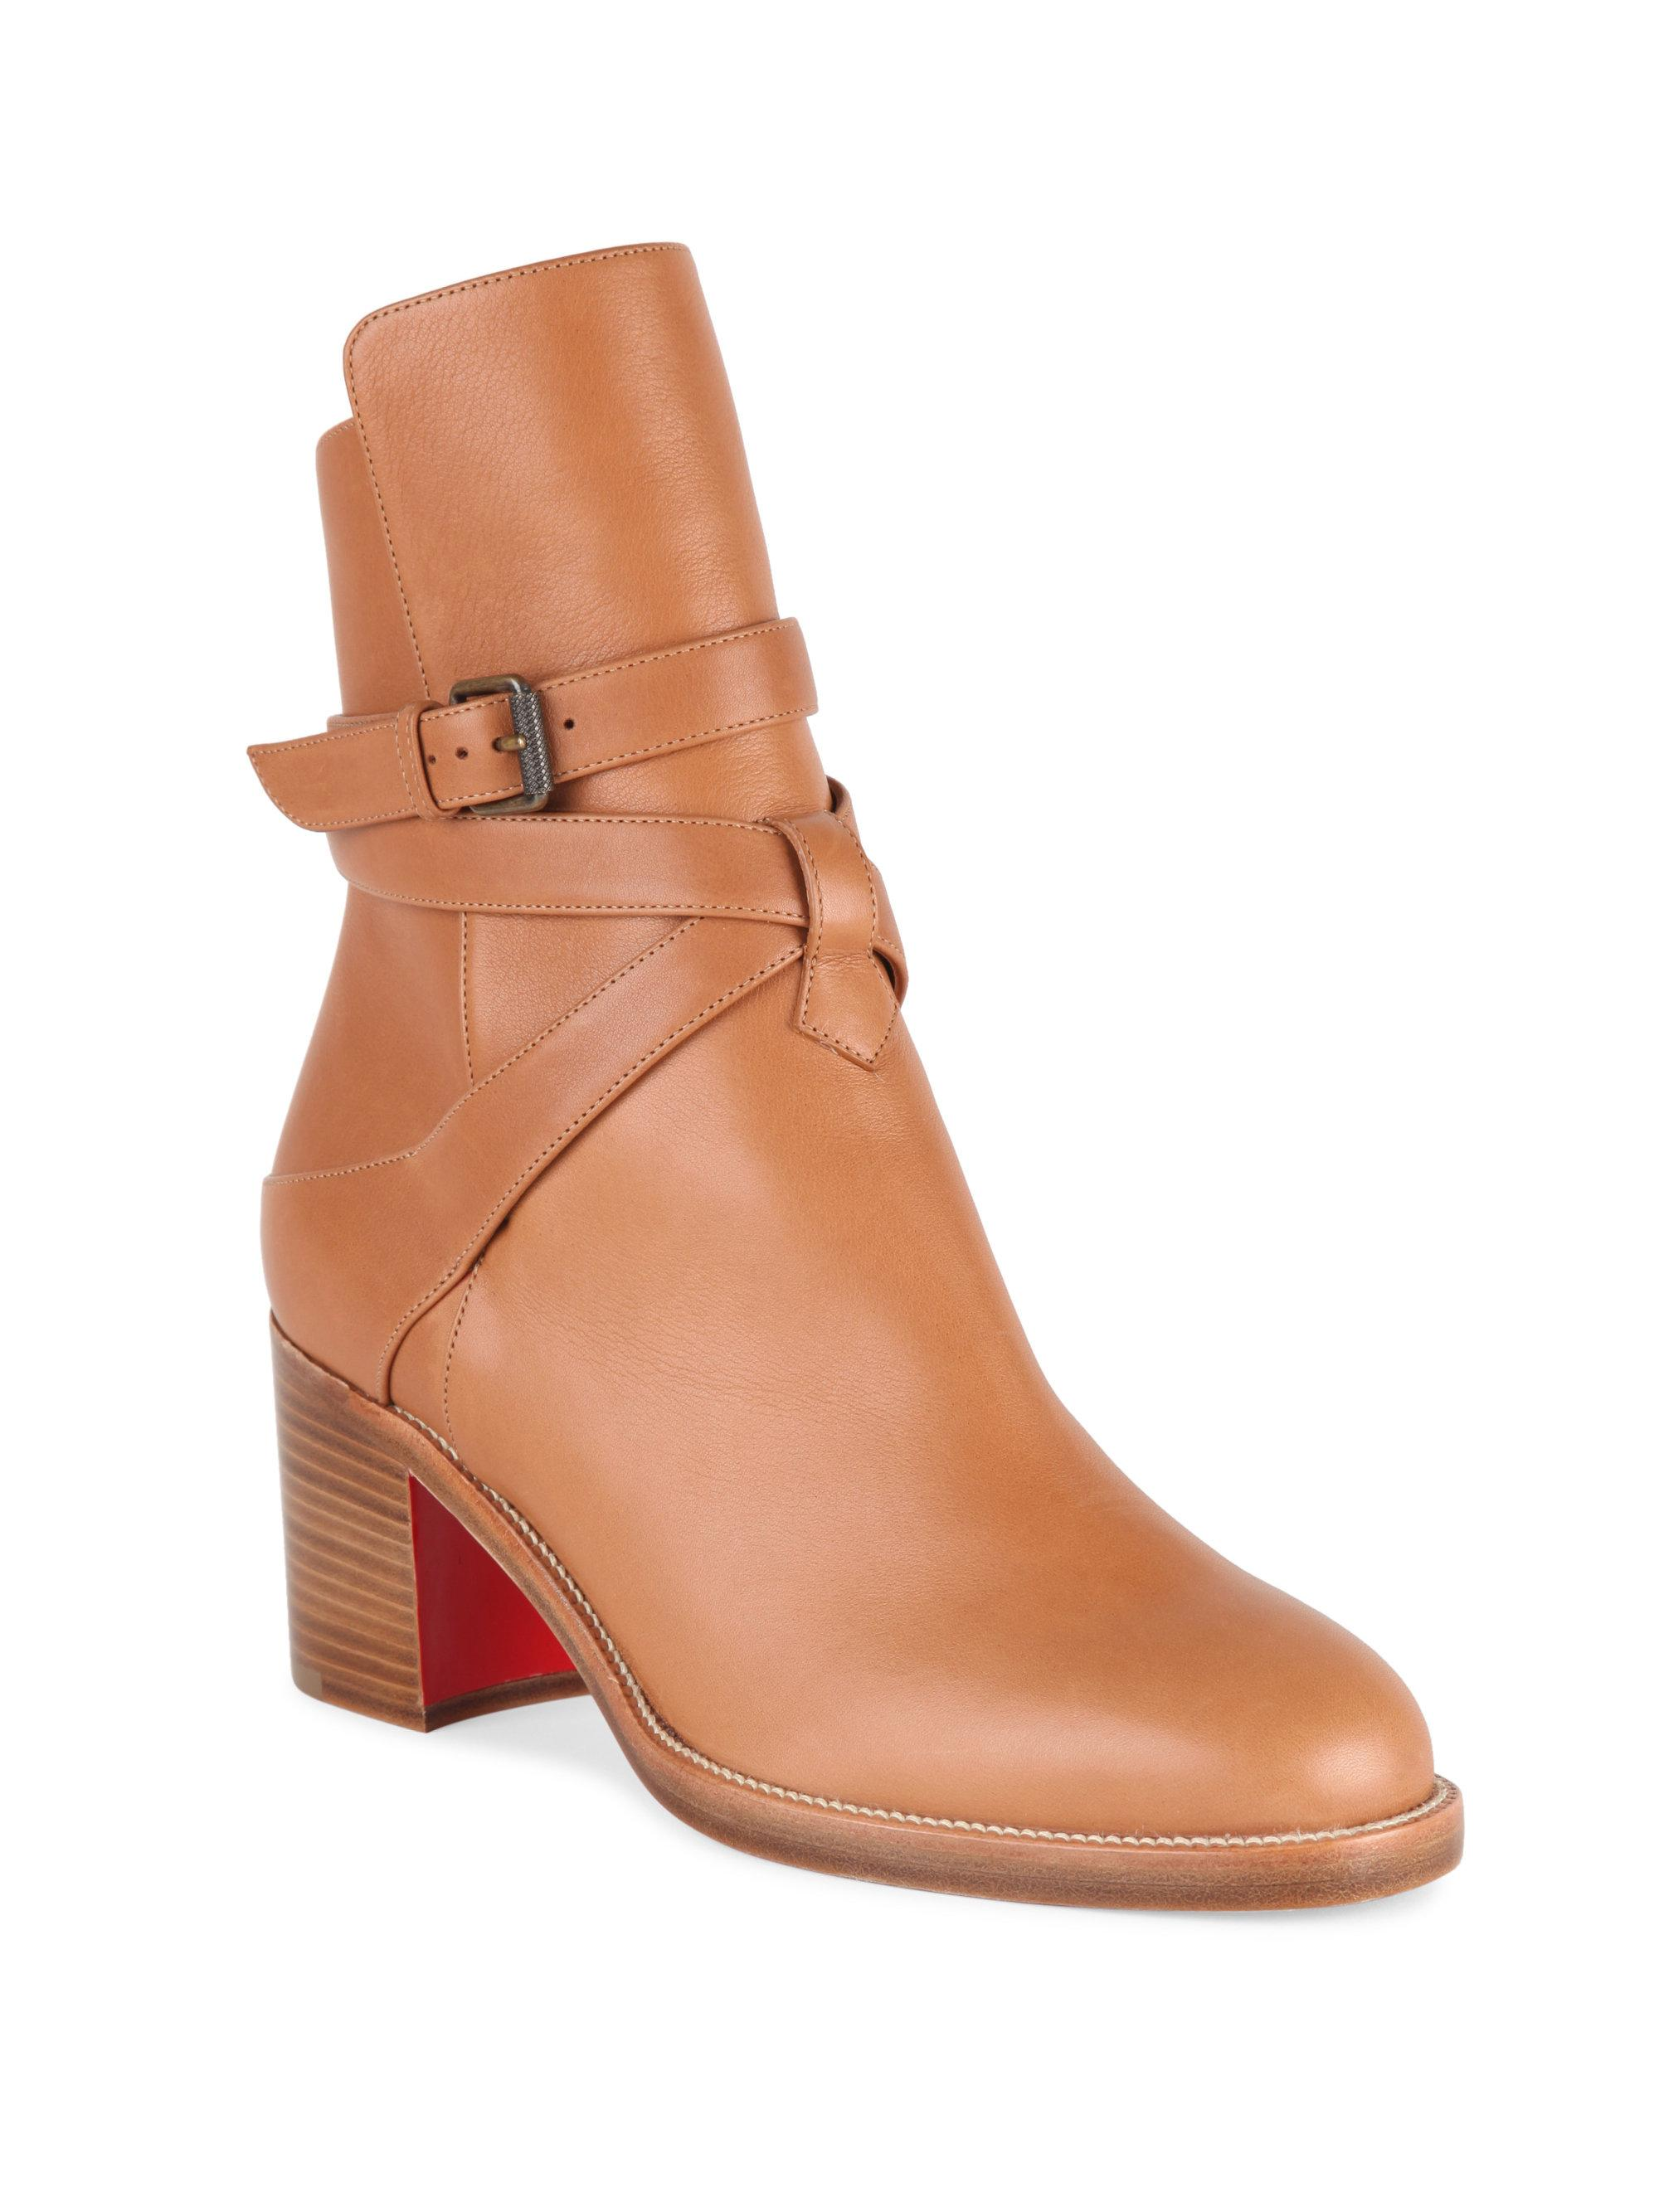 20b36cc80c4d Lyst - Christian Louboutin Karistrap 70 Leather Booties in Brown